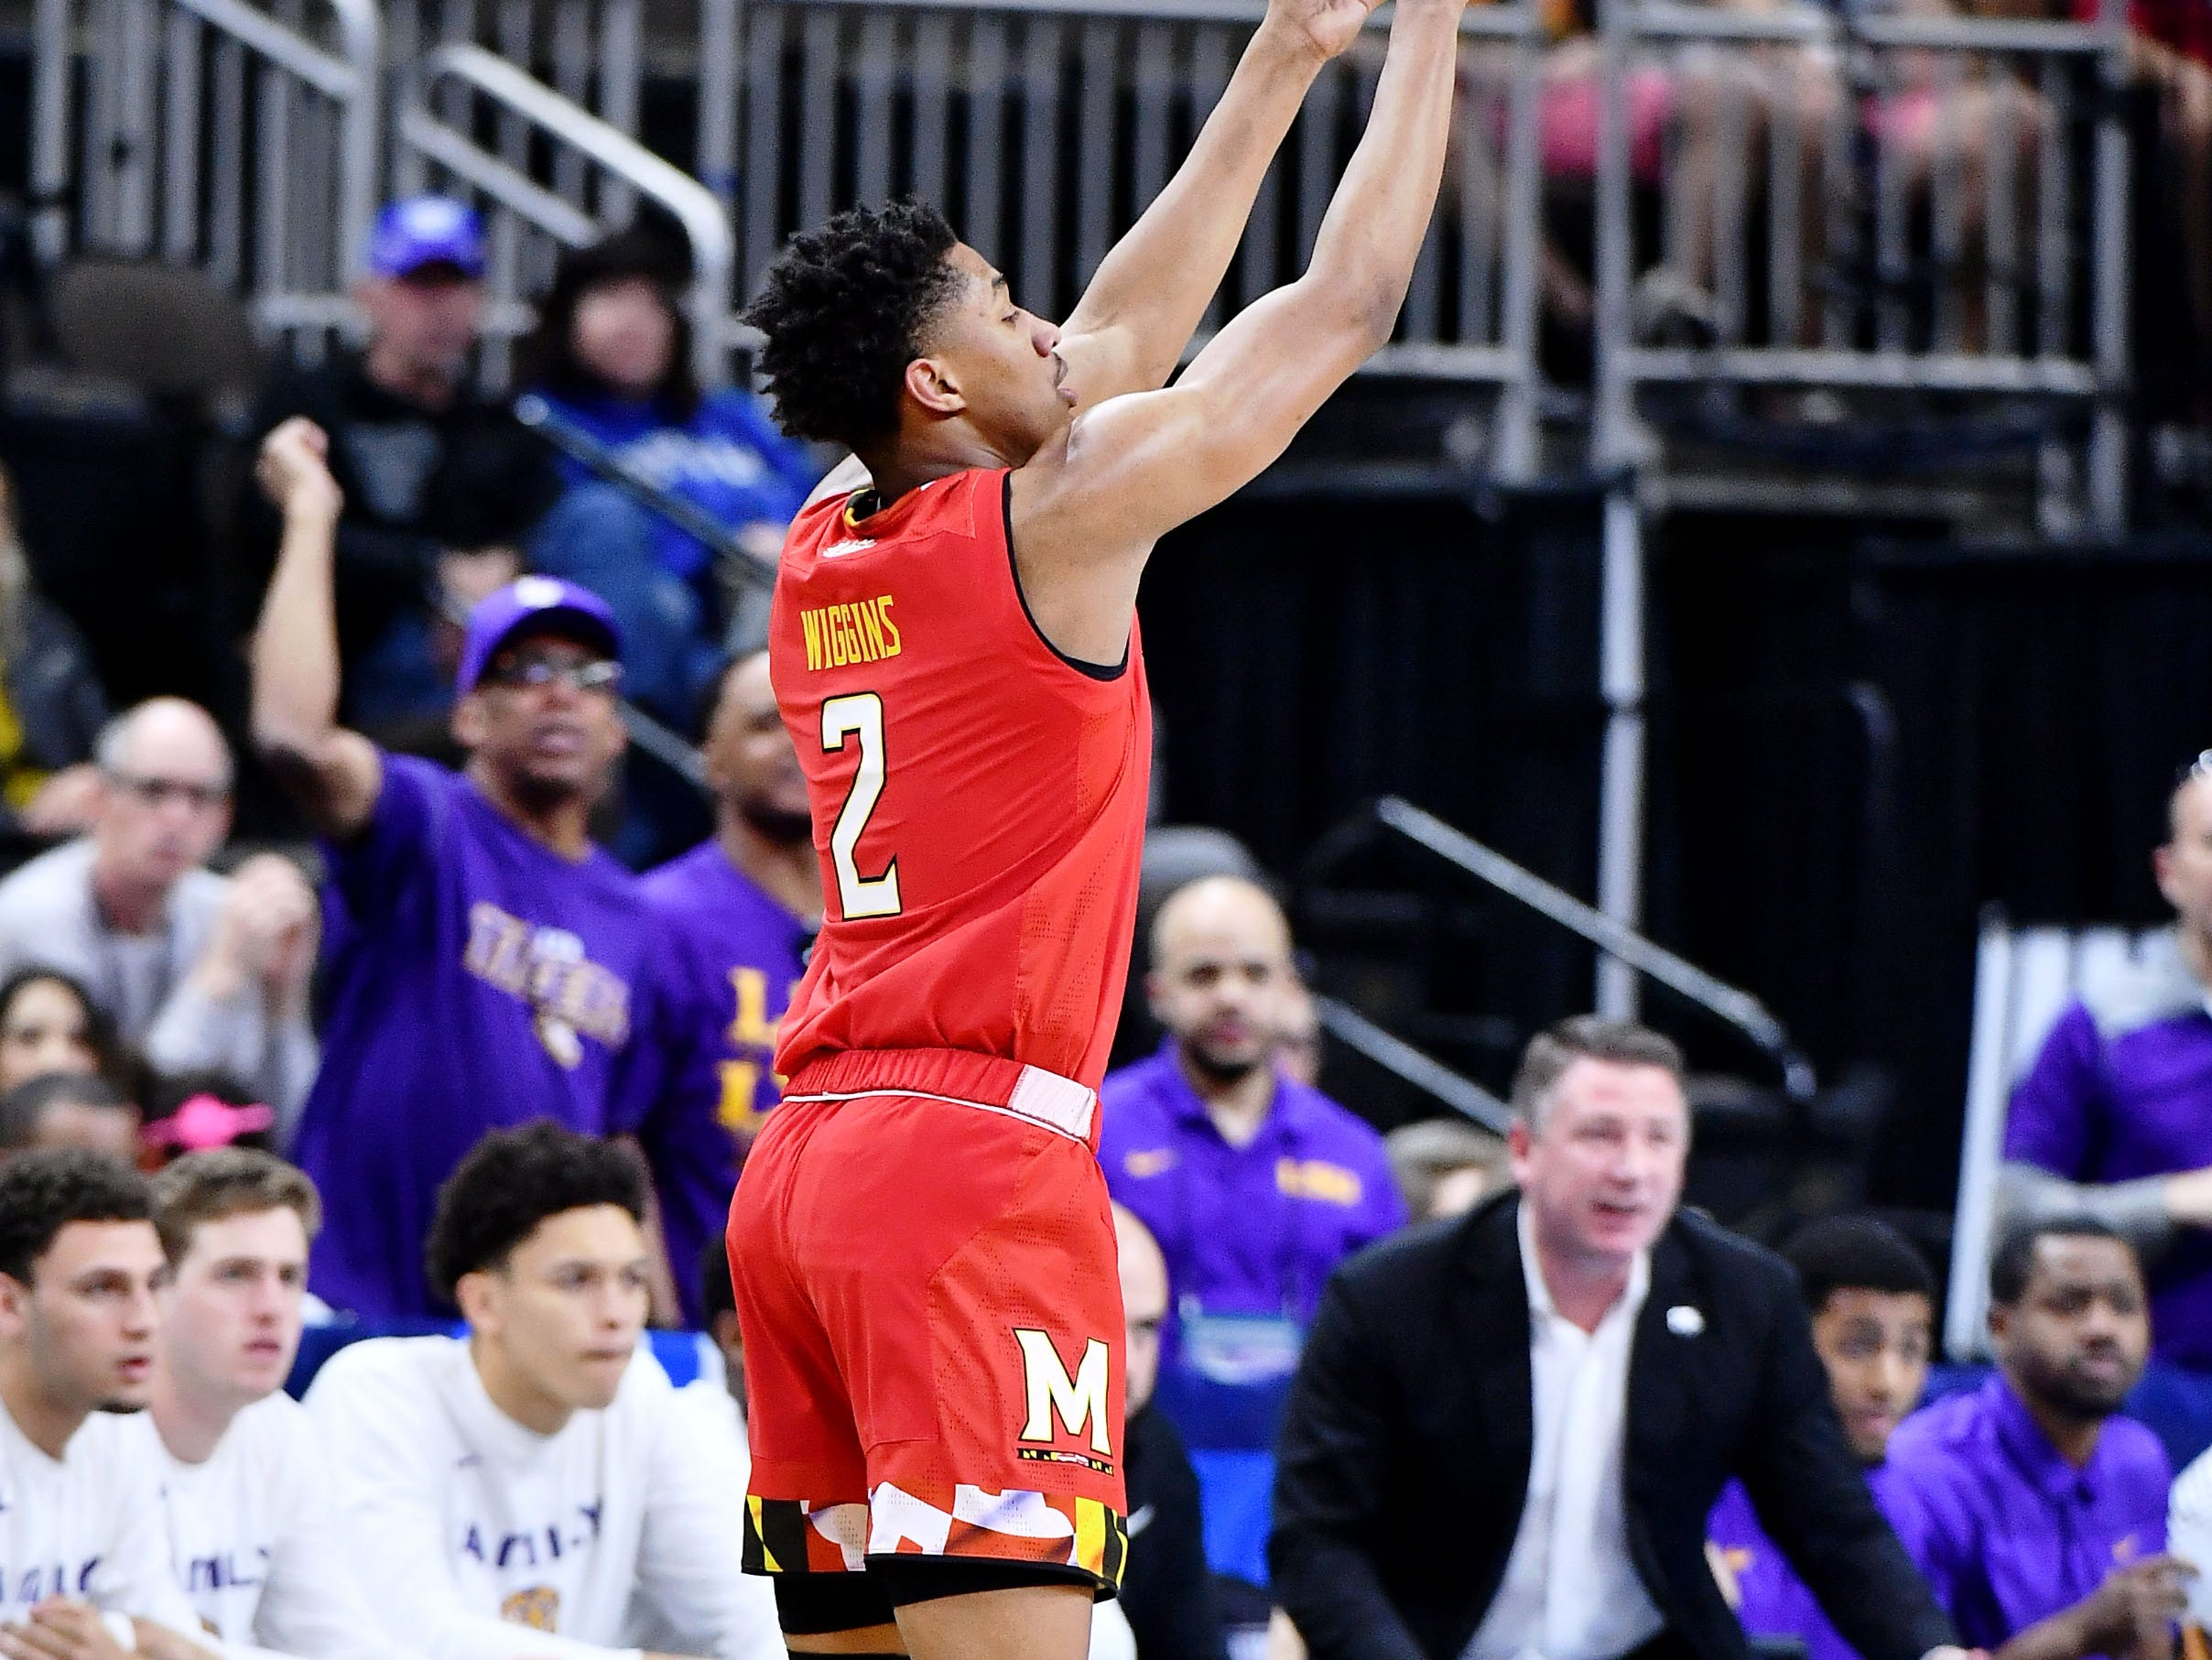 Mar 23, 2019; Jacksonville, FL, USA; Maryland Terrapins guard Aaron Wiggins (2) shoots against the LSU Tigers during the first half in the second round of the 2019 NCAA Tournament at Jacksonville Veterans Memorial Arena. Mandatory Credit: John David Mercer-USA TODAY Sports